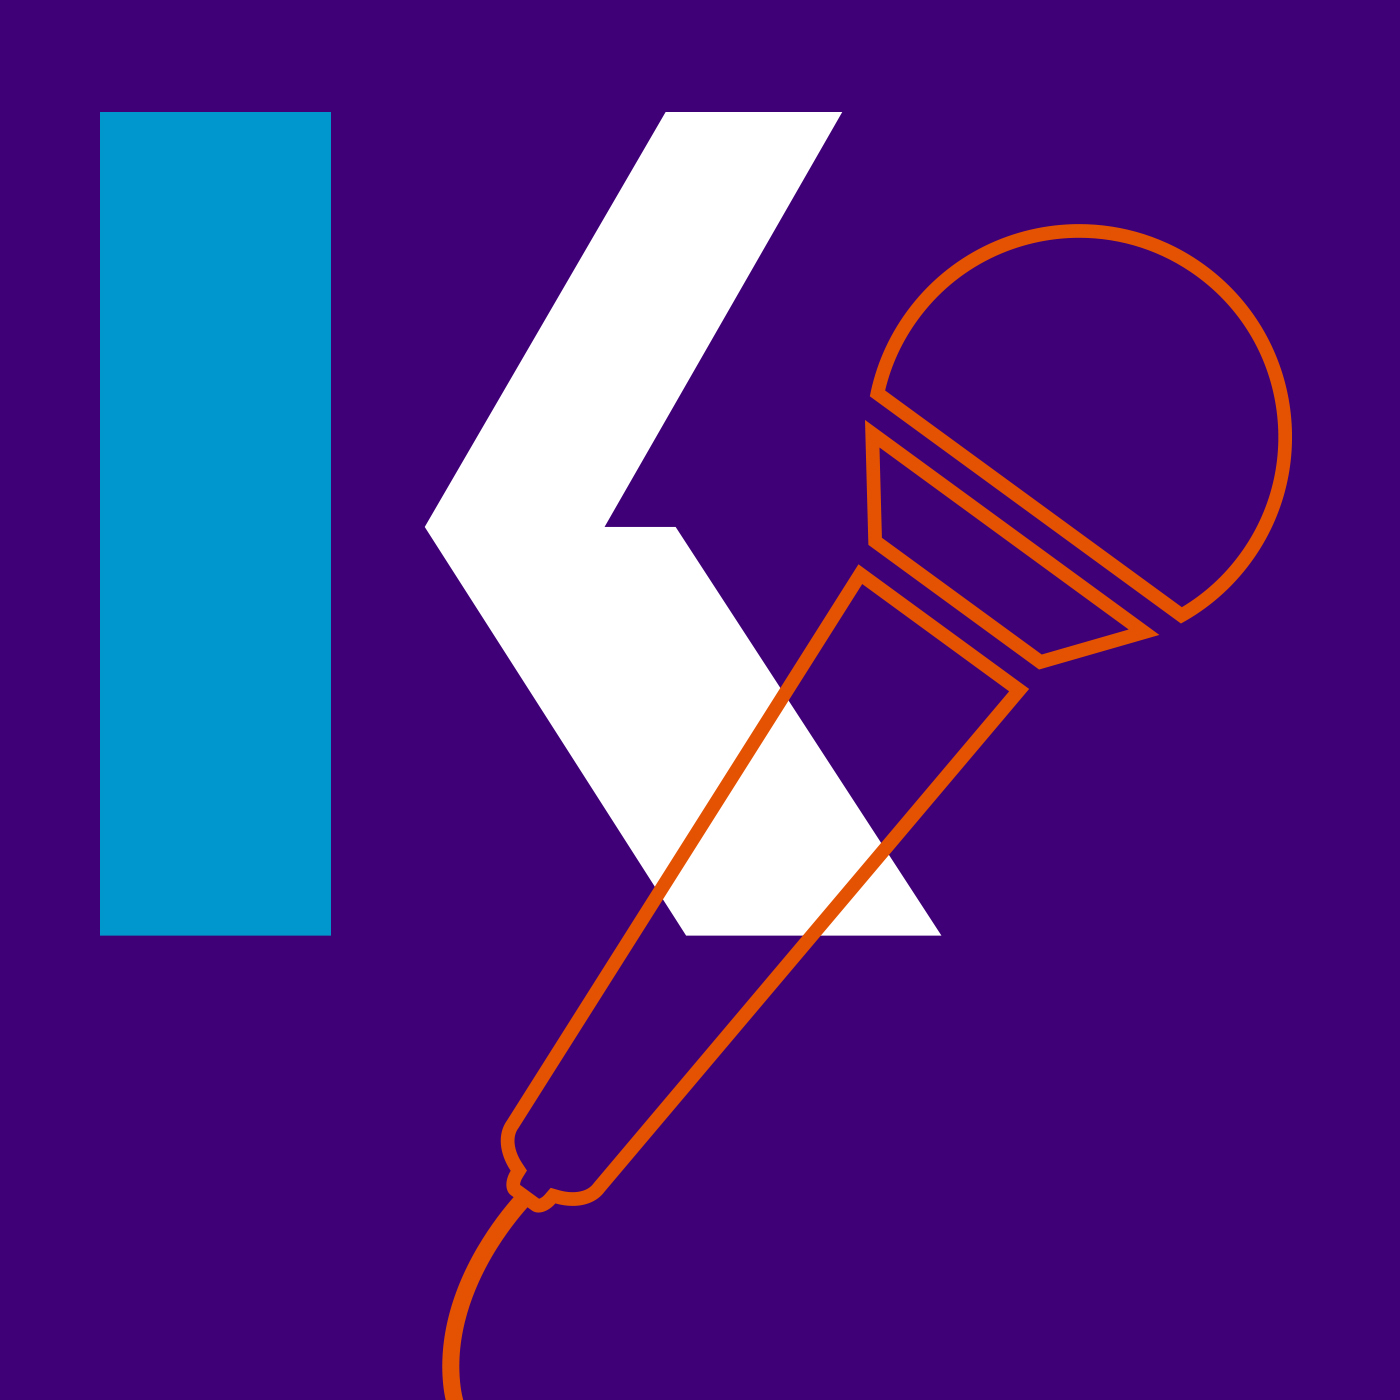 Kaplan's NCLEX Prepcast - Episode 19 - Getting Your Masters in Nursing or DNP